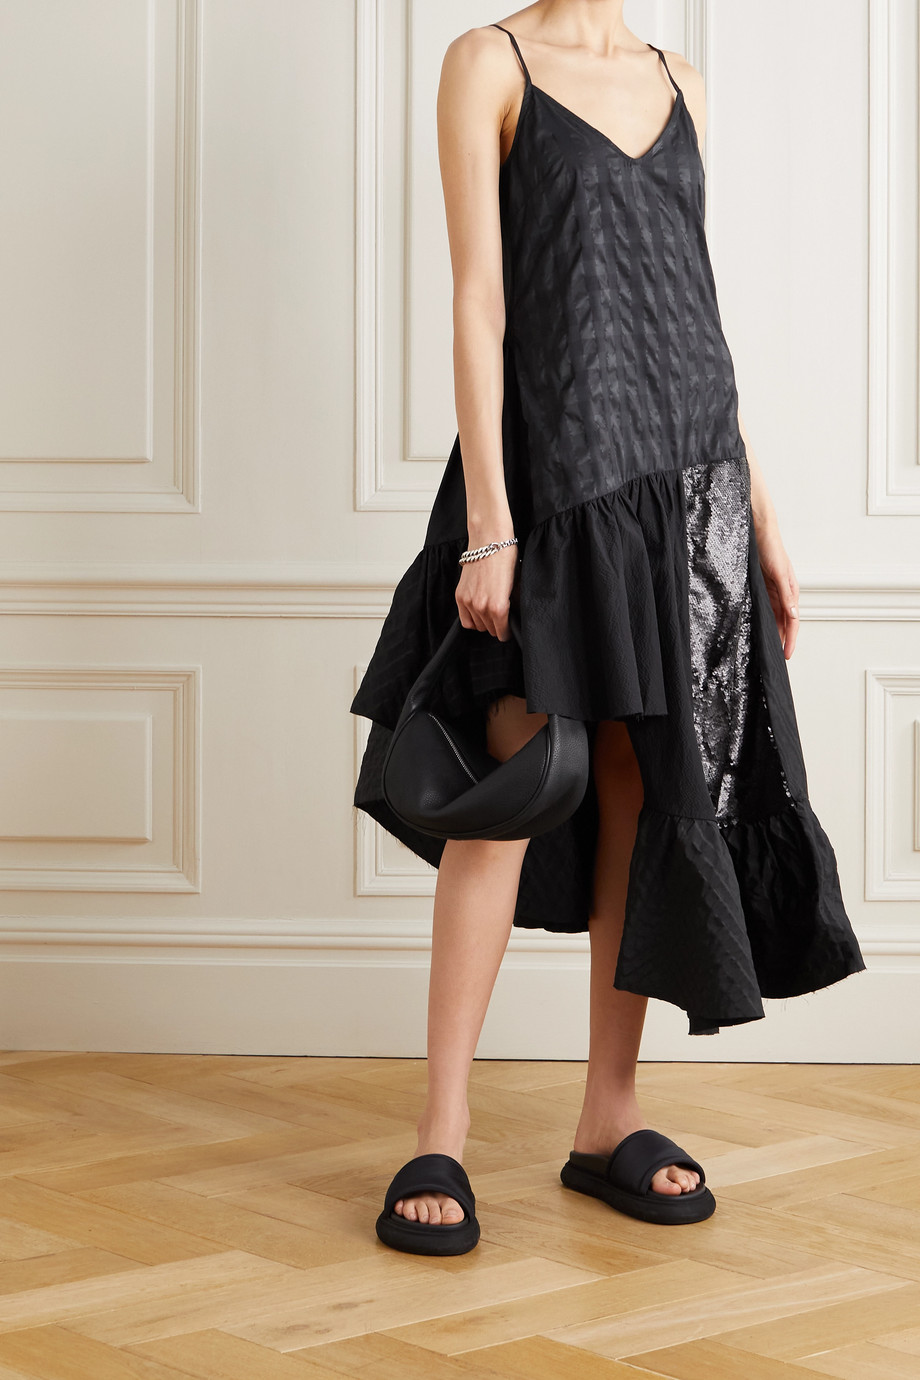 Marques' Almeida ReM'Ade by Marques' Almeida patchwork cotton-seersucker, poplin and sequined tulle dress